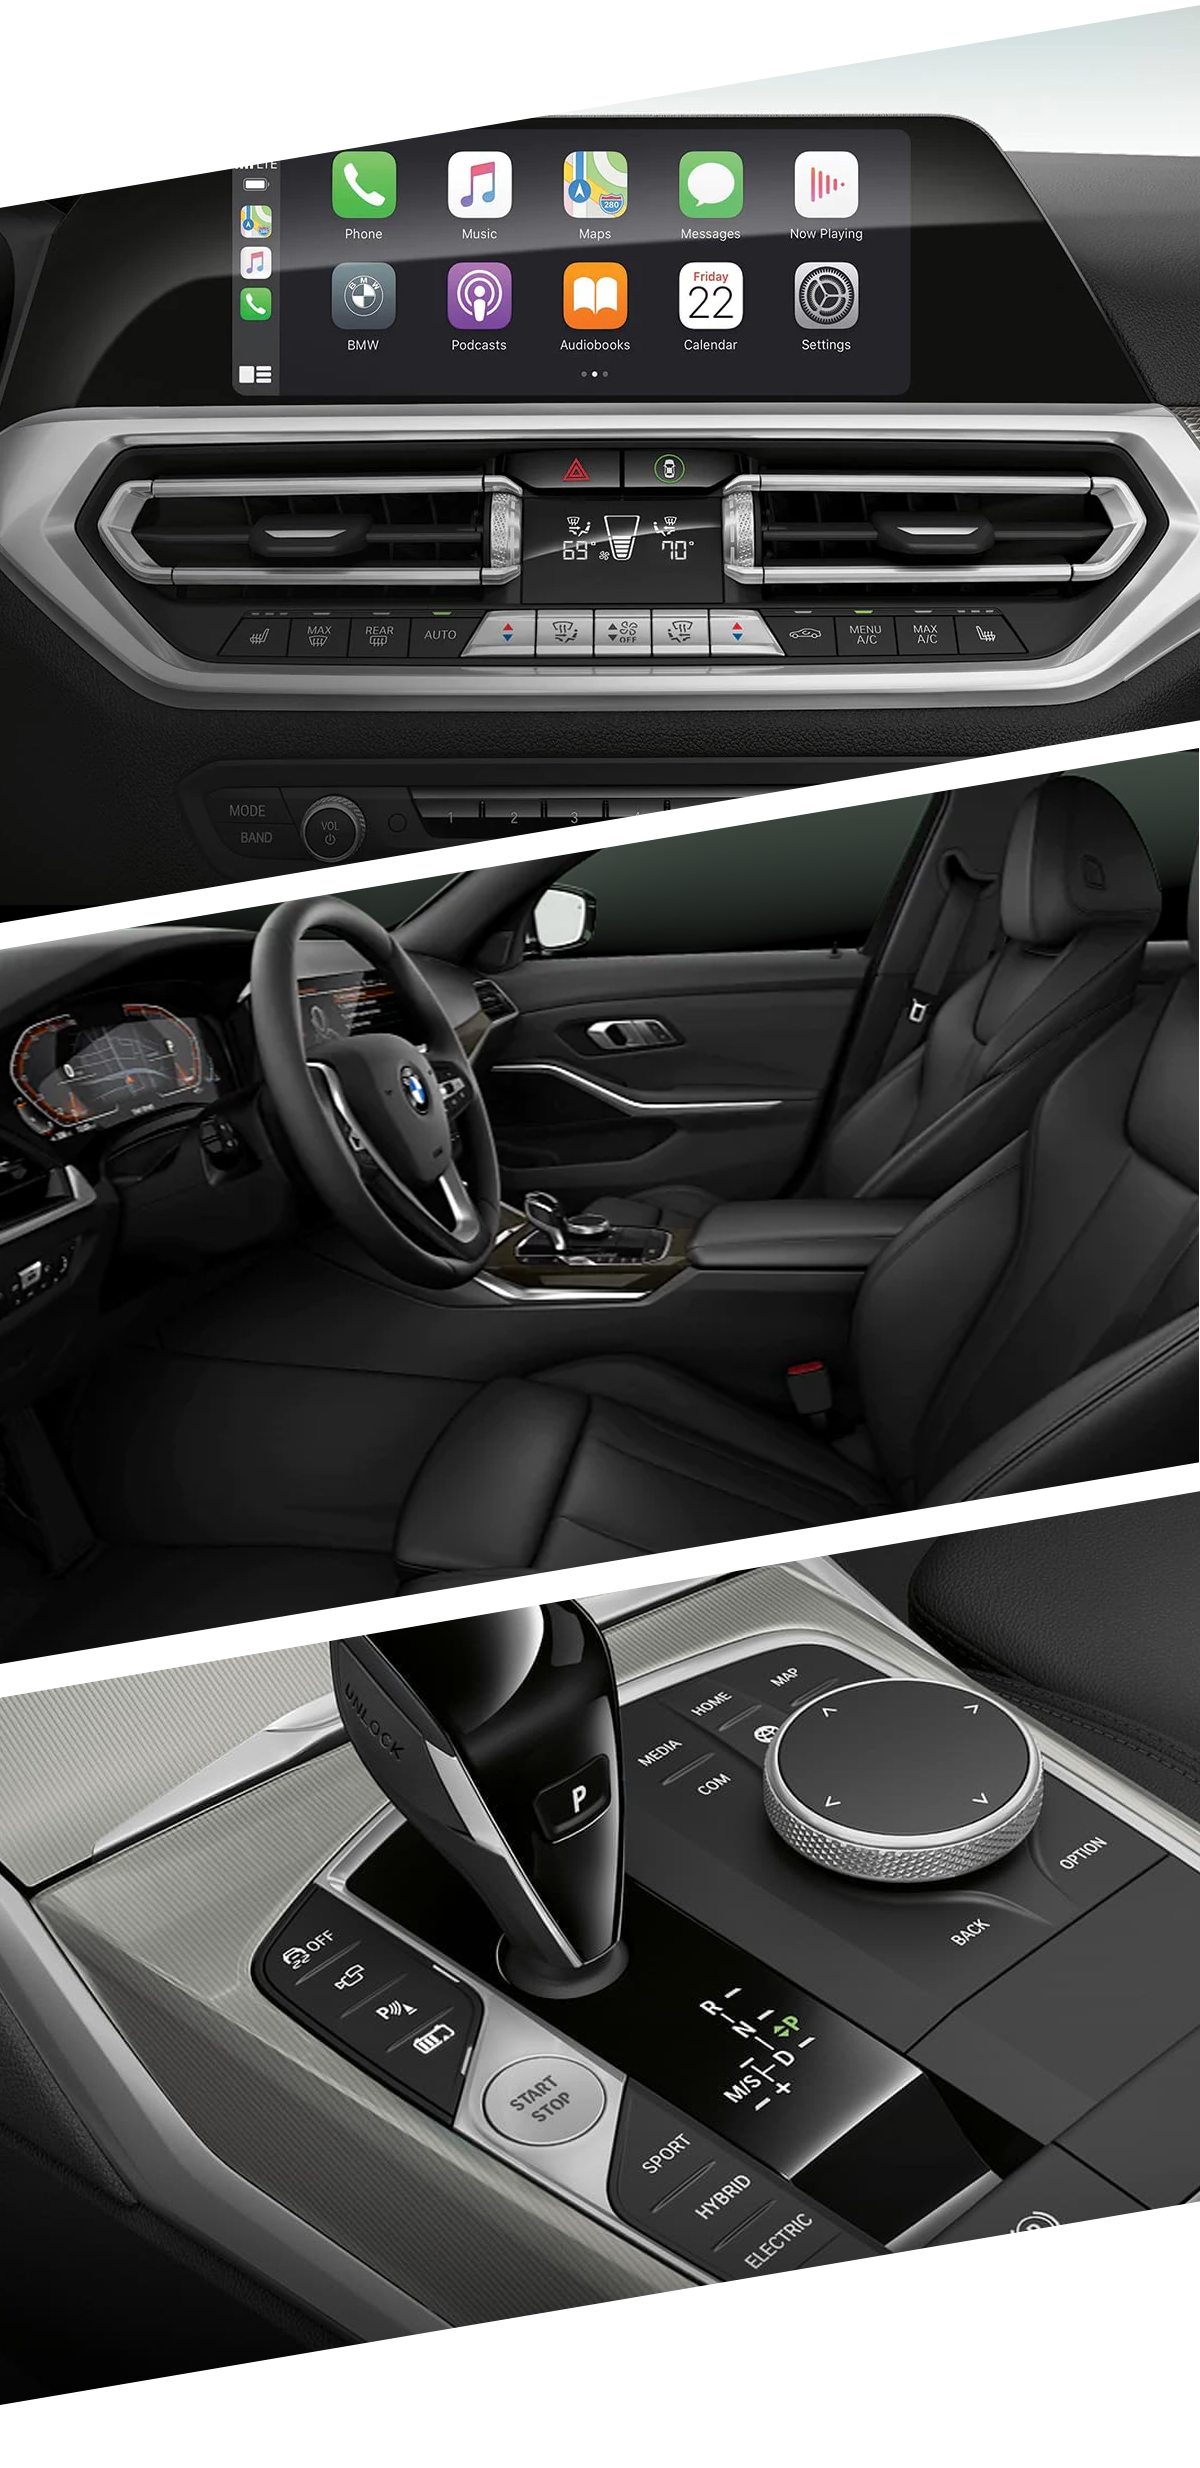 2021 BMW 3 Series Interior Images